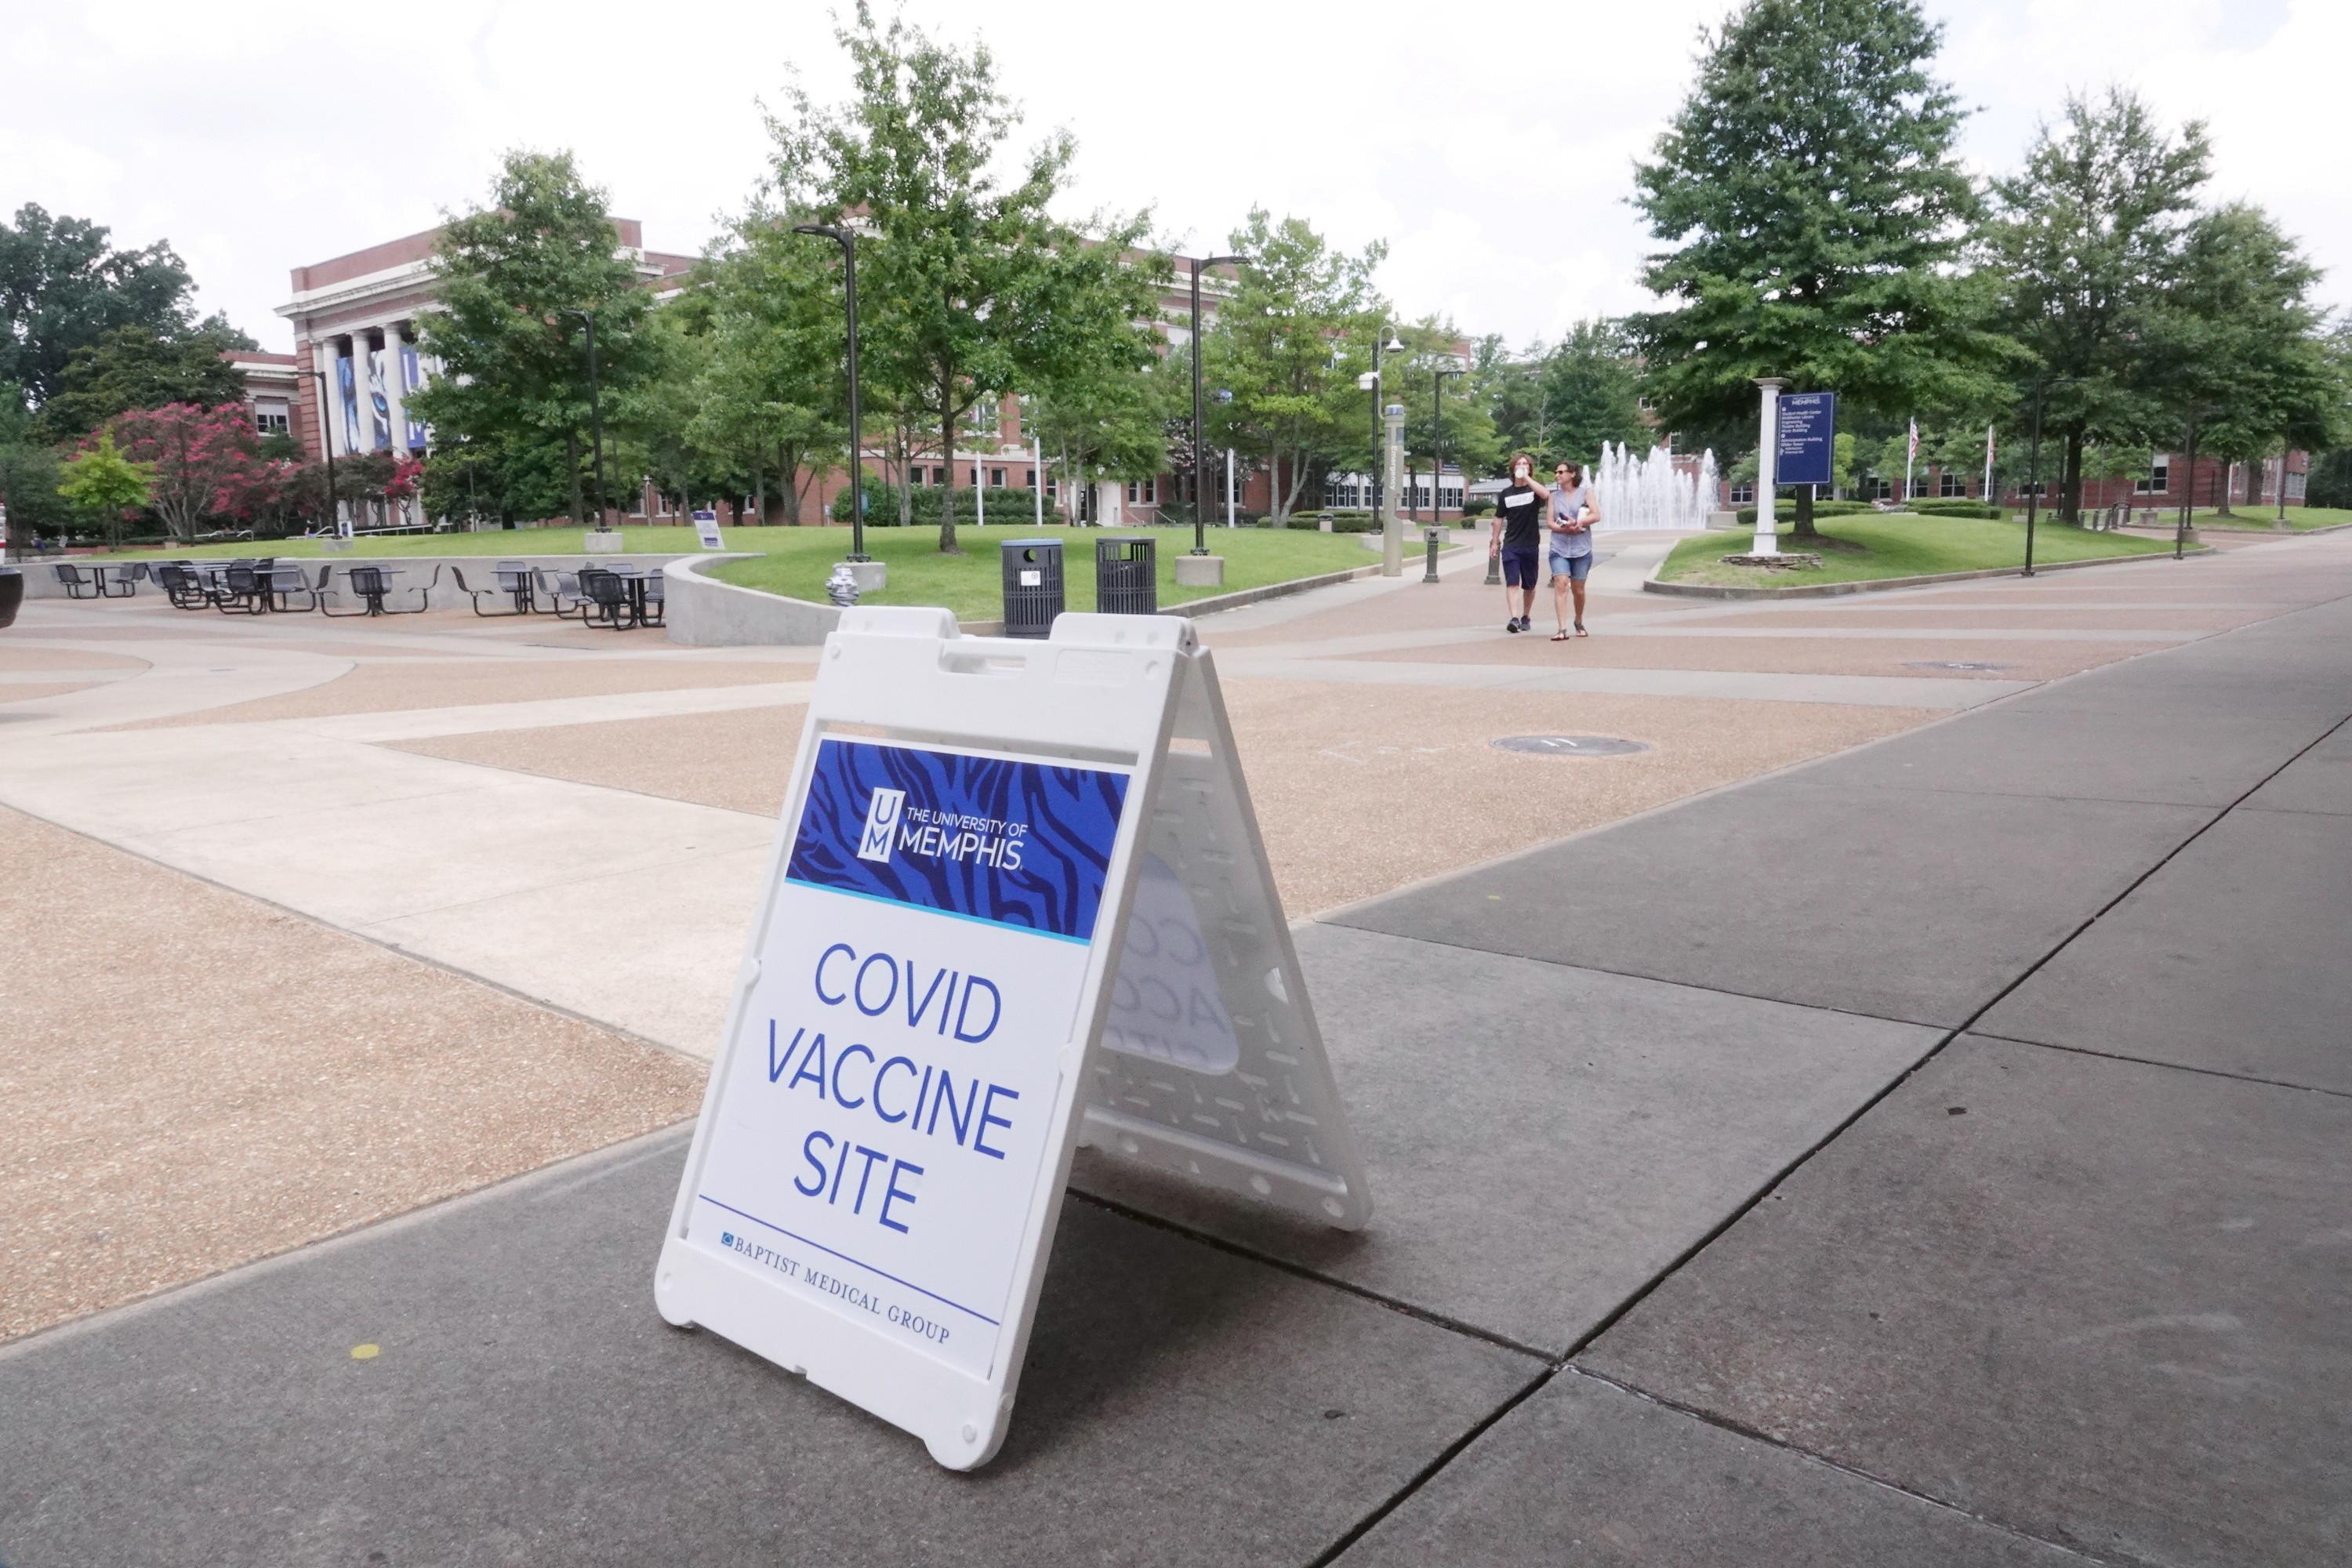 A coronavirus disease (COVID-19) vaccination site sign stands on the campus of the University of Memphis in Memphis, Tennessee, U.S., July 22, 2021. REUTERS/Karen Pulfer Focht - RC2UPO9JUGRG